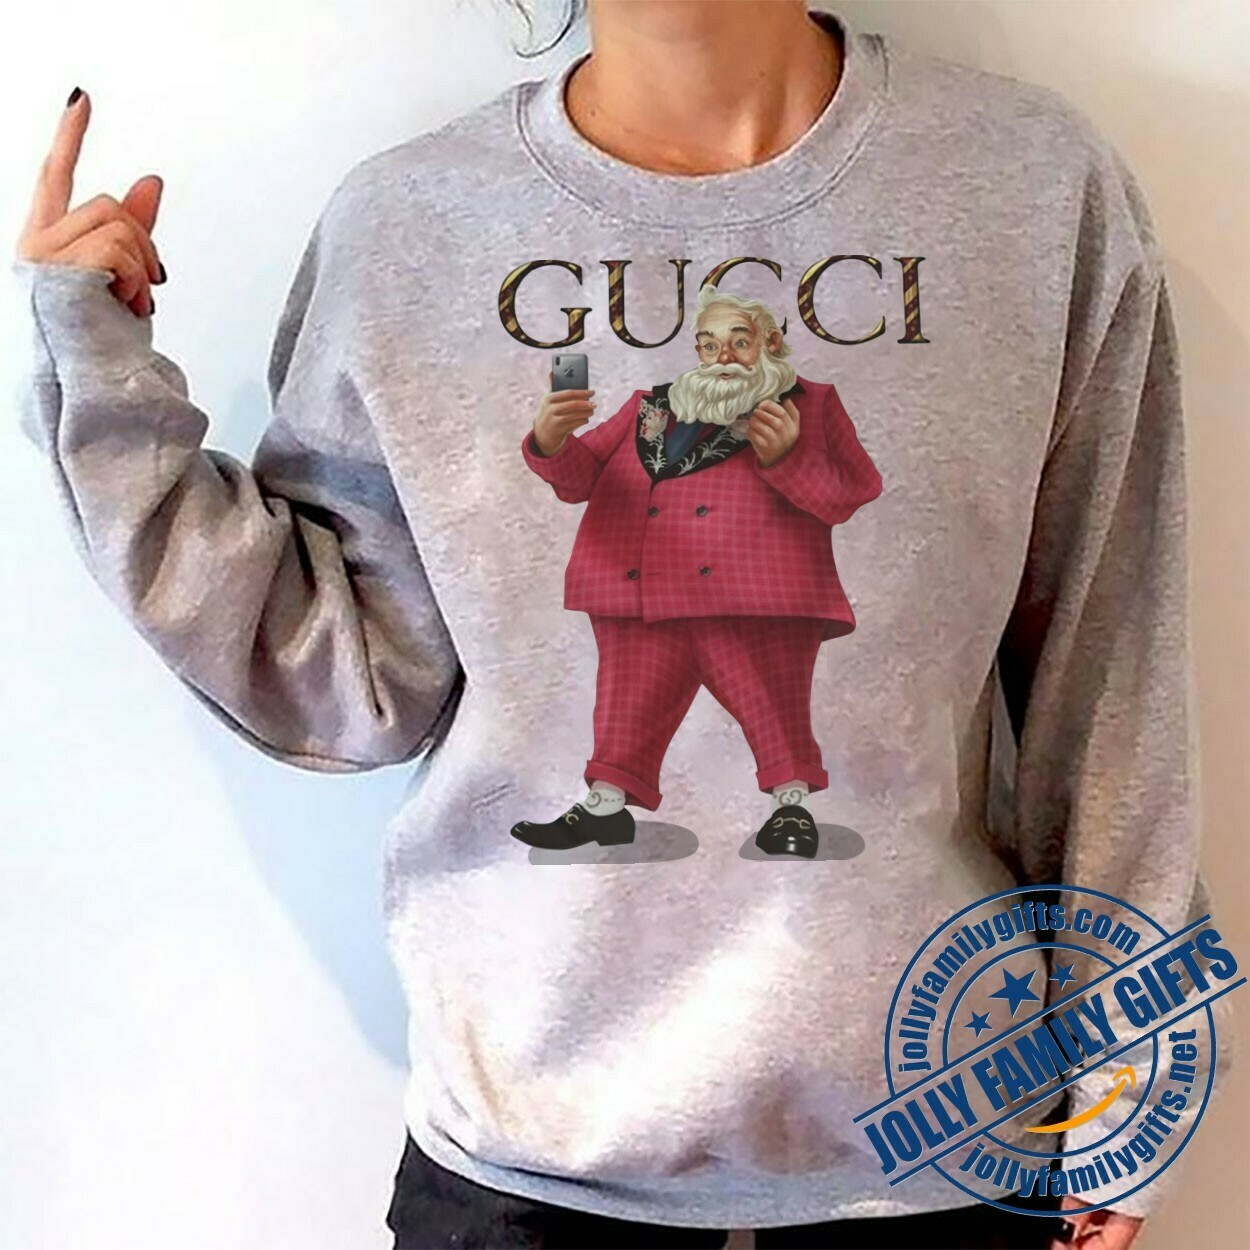 Winter Spring Fashion Shows 2019 2020 Clothing Brand High Quality Luxury Holiday Christmas Gift for Women Men  Unisex T-Shirt Hoodie Sweatshirt Sweater for Ladies Women Men Kids Youth Gifts Tee Jolly